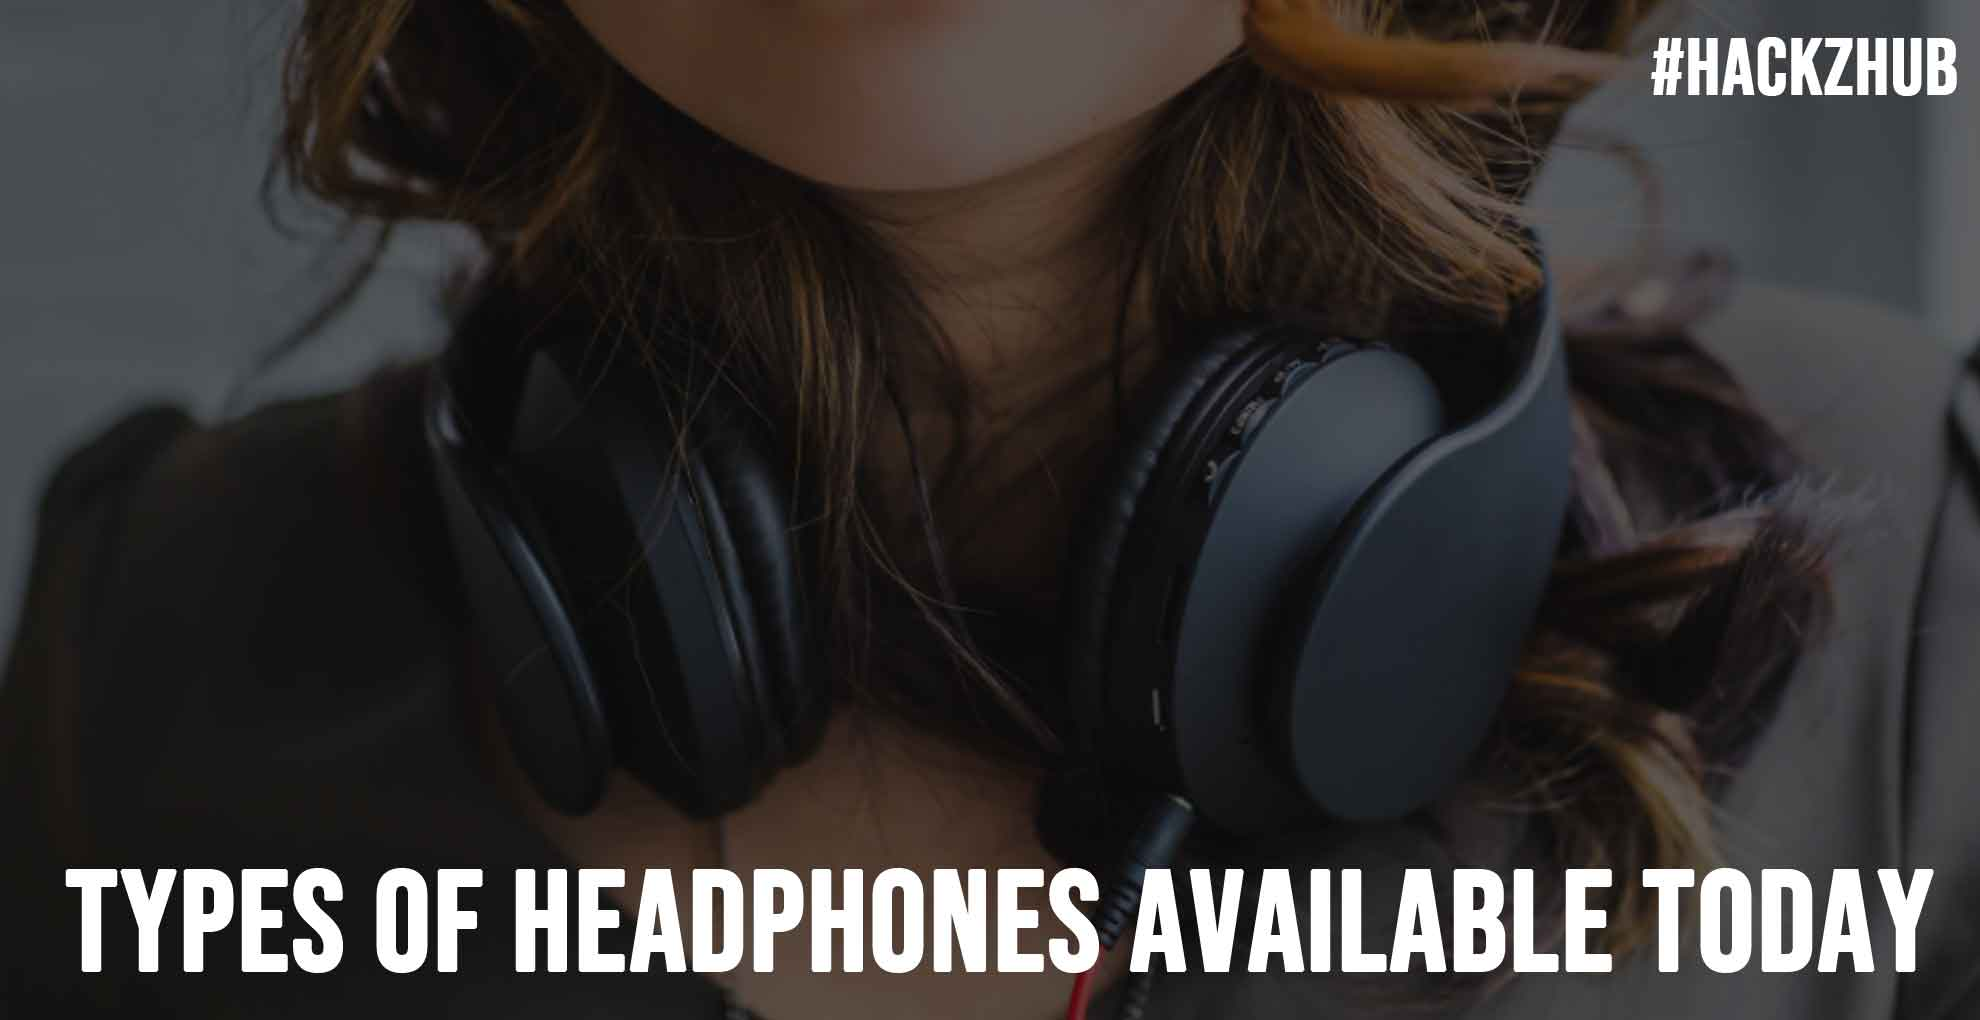 Types of Headphones Available Today